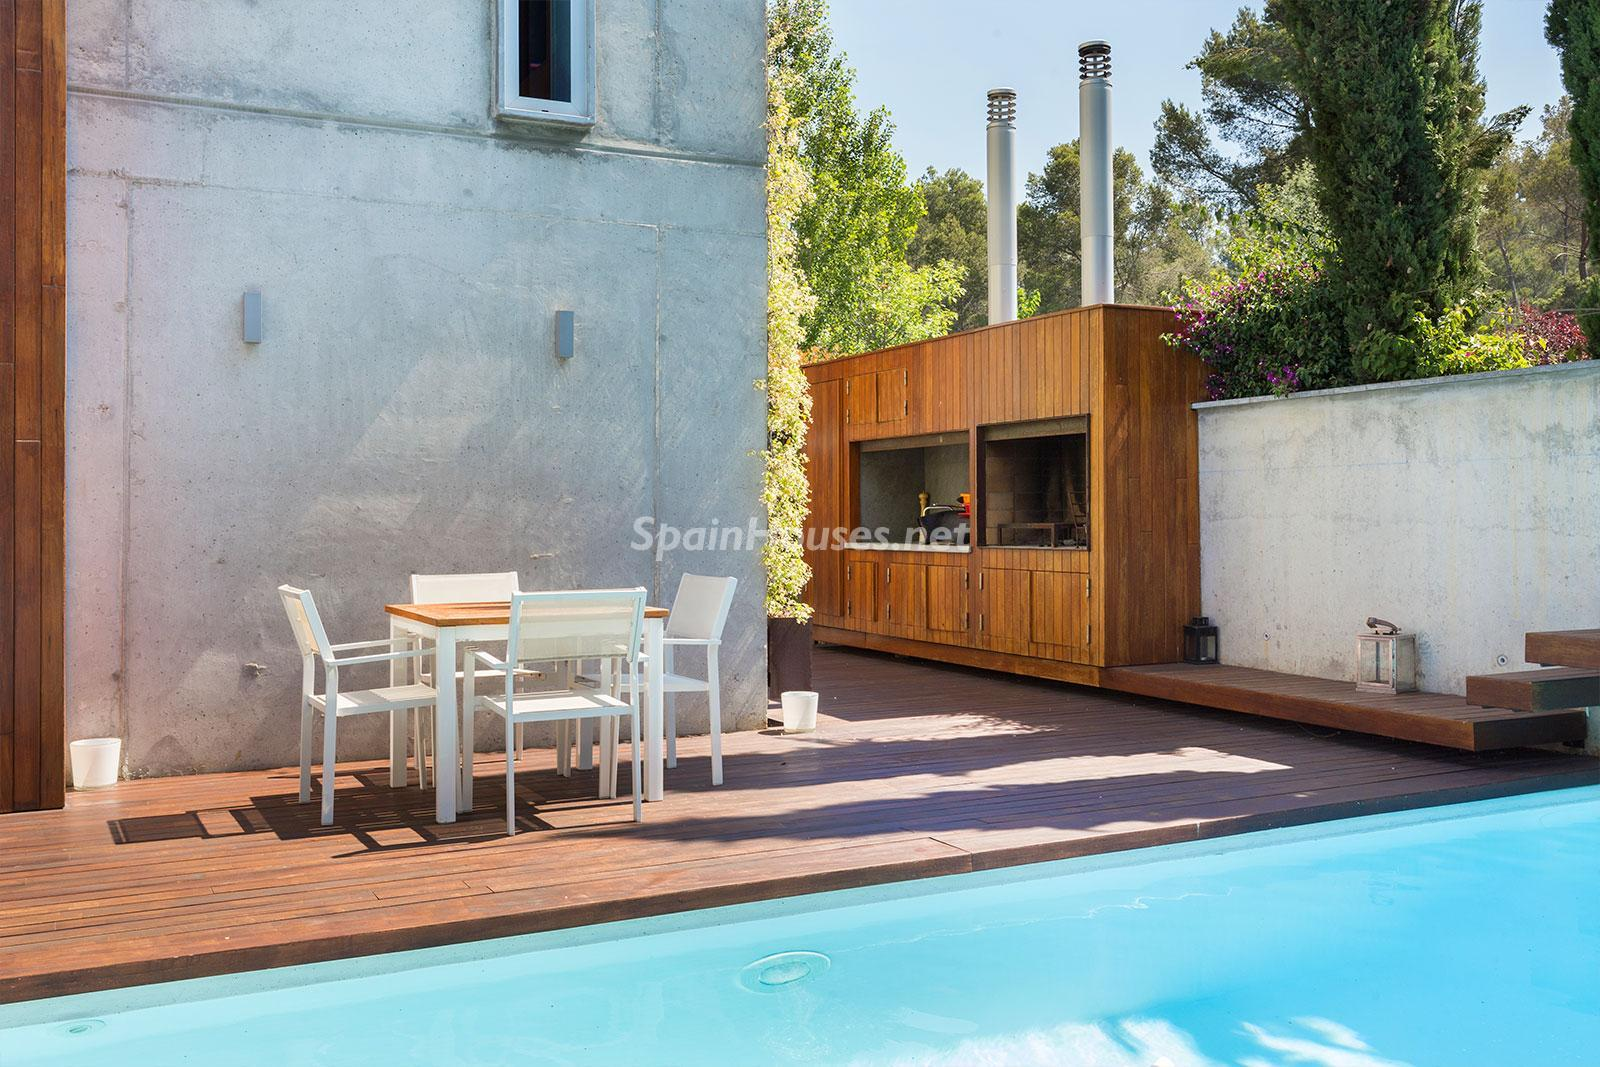 5. House for sale in Barcelona city - Superb 5 bed home in Barcelona features 2 swimming pools and a huge garden